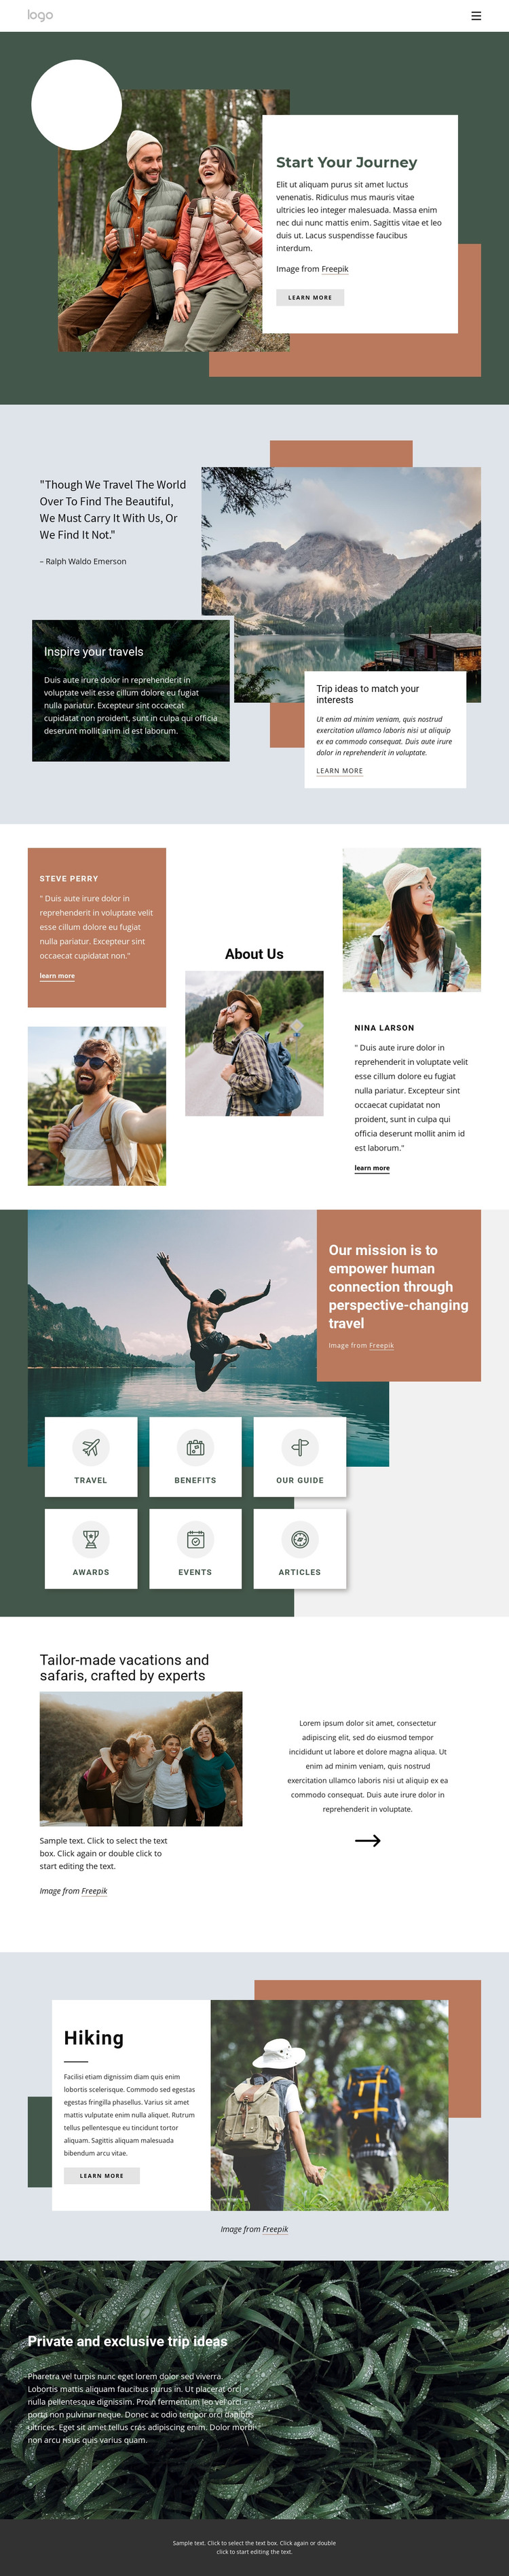 Adventure travel company WordPress Theme